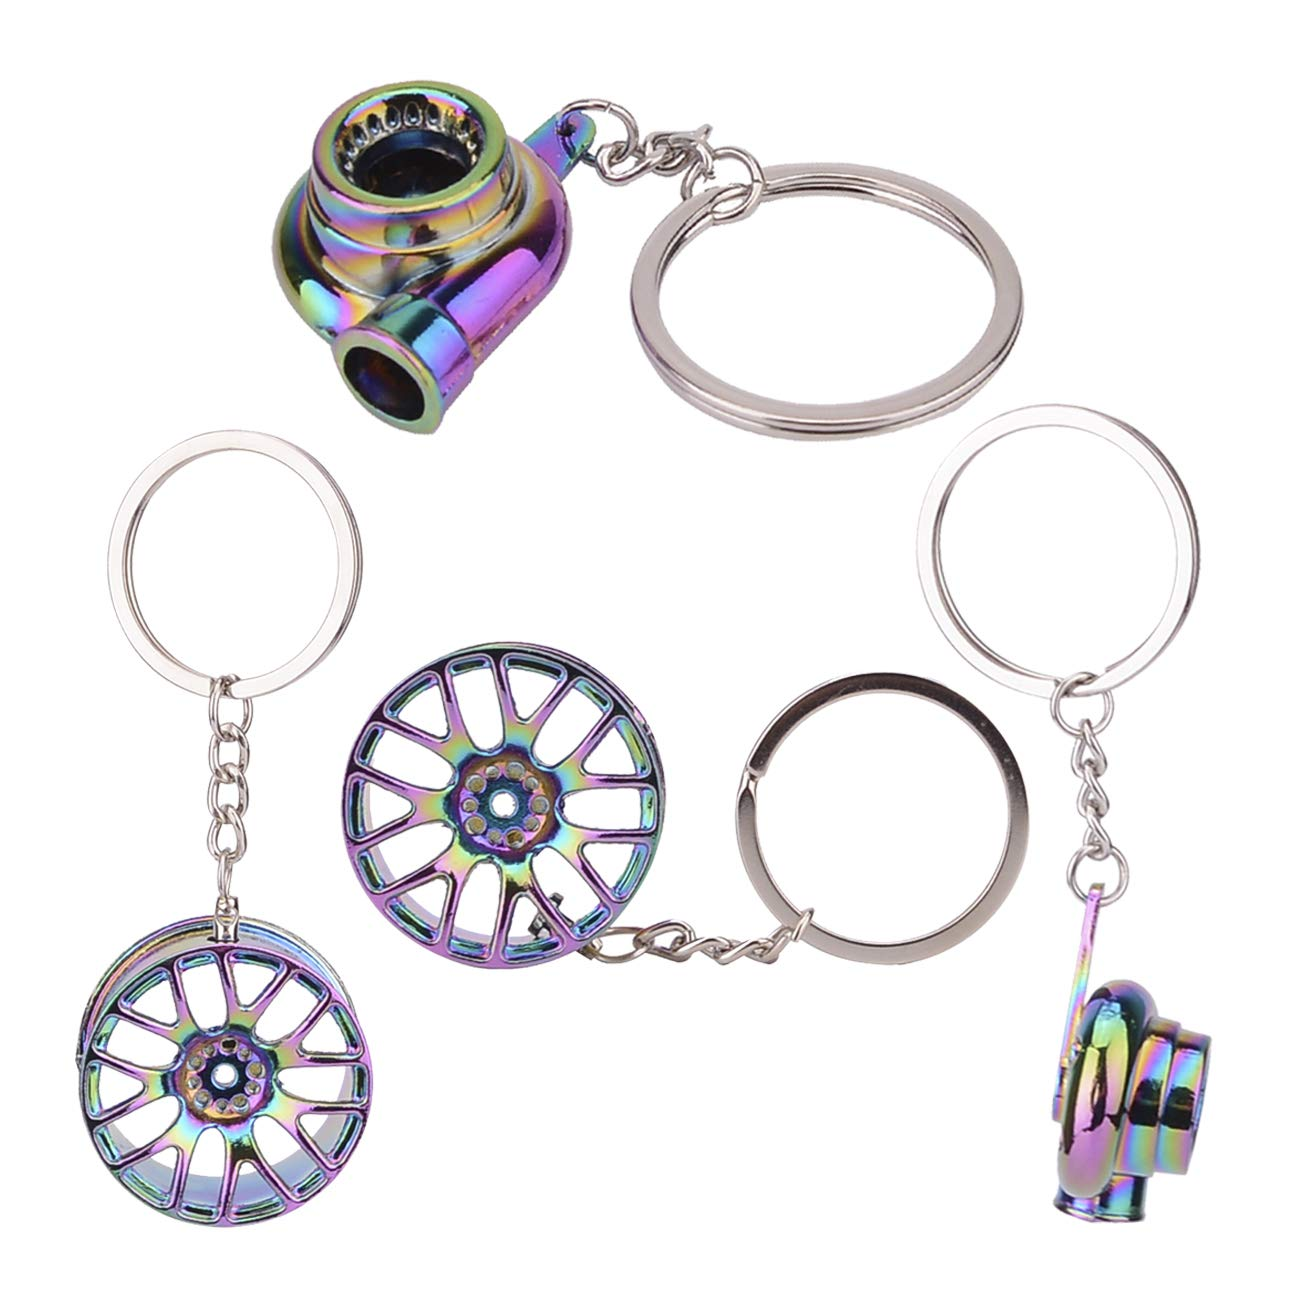 Colorful Turbo Keychain Blue Brake Rotor Keychain Black Manual Gearbox Keychain Colorful Tire Rim Keychain Febrytold 5 Pcs Car Parts Model Key Chains Red Spring Shock-Absorber Keychain